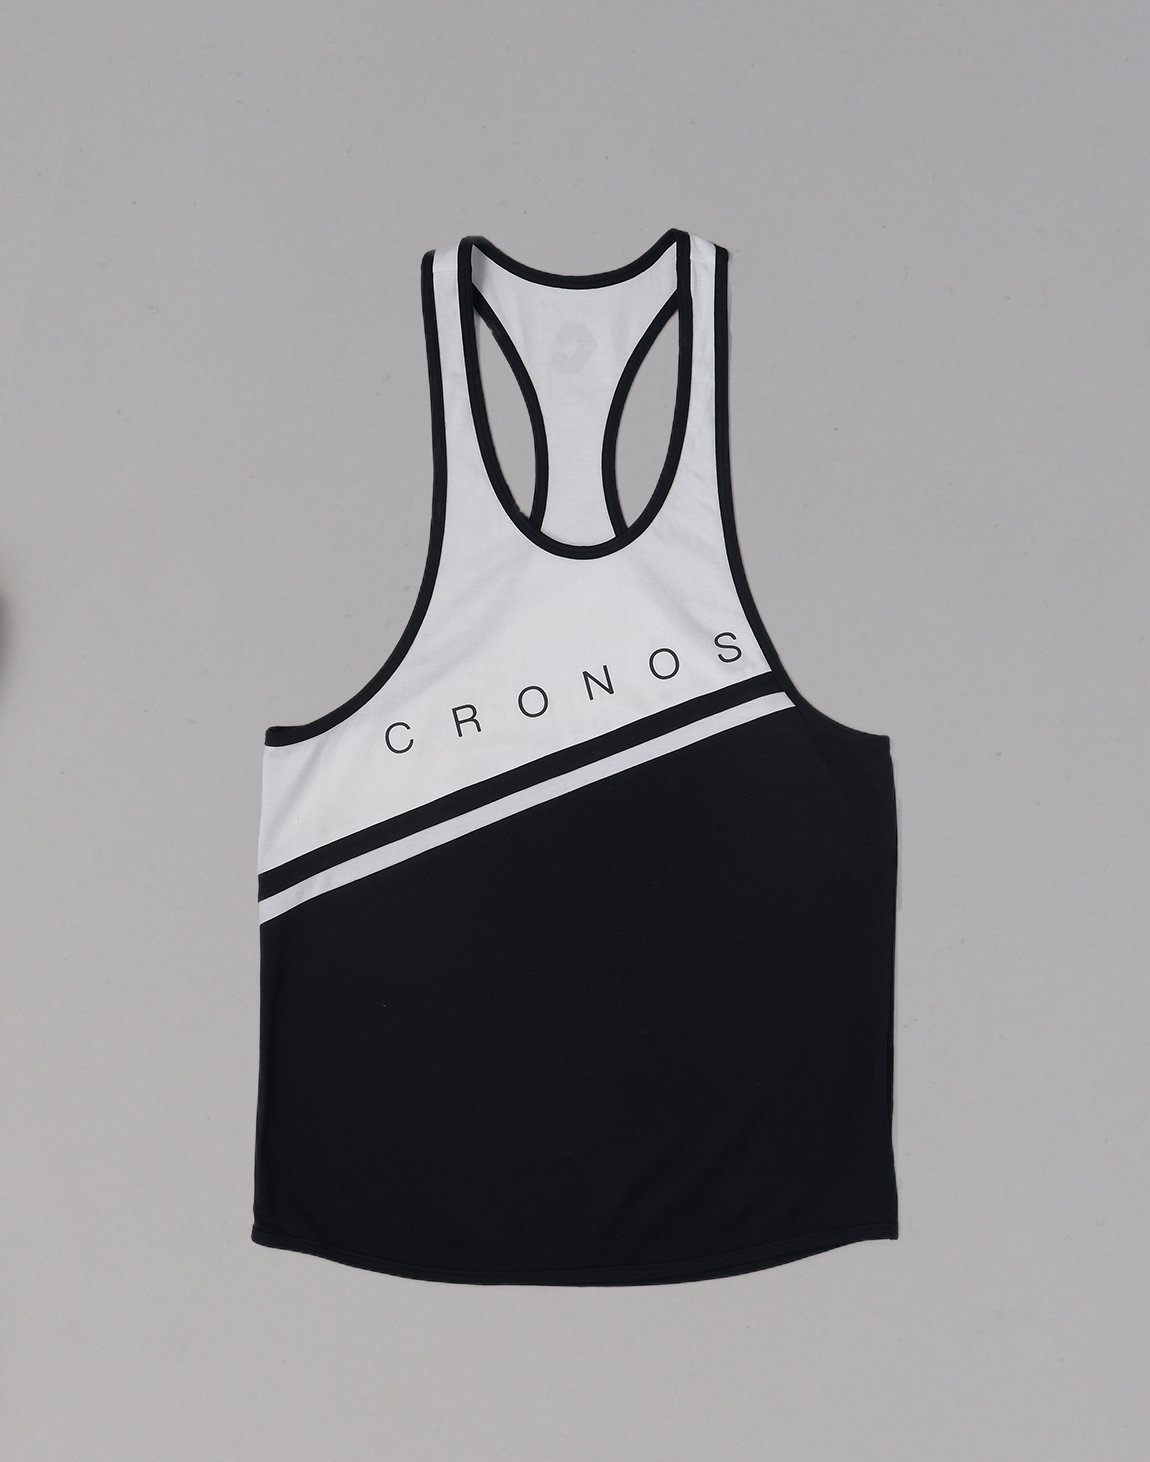 <img class='new_mark_img1' src='https://img.shop-pro.jp/img/new/icons1.gif' style='border:none;display:inline;margin:0px;padding:0px;width:auto;' />CRONOS Bi-COLOR LINE TANKTOP【BLACK】